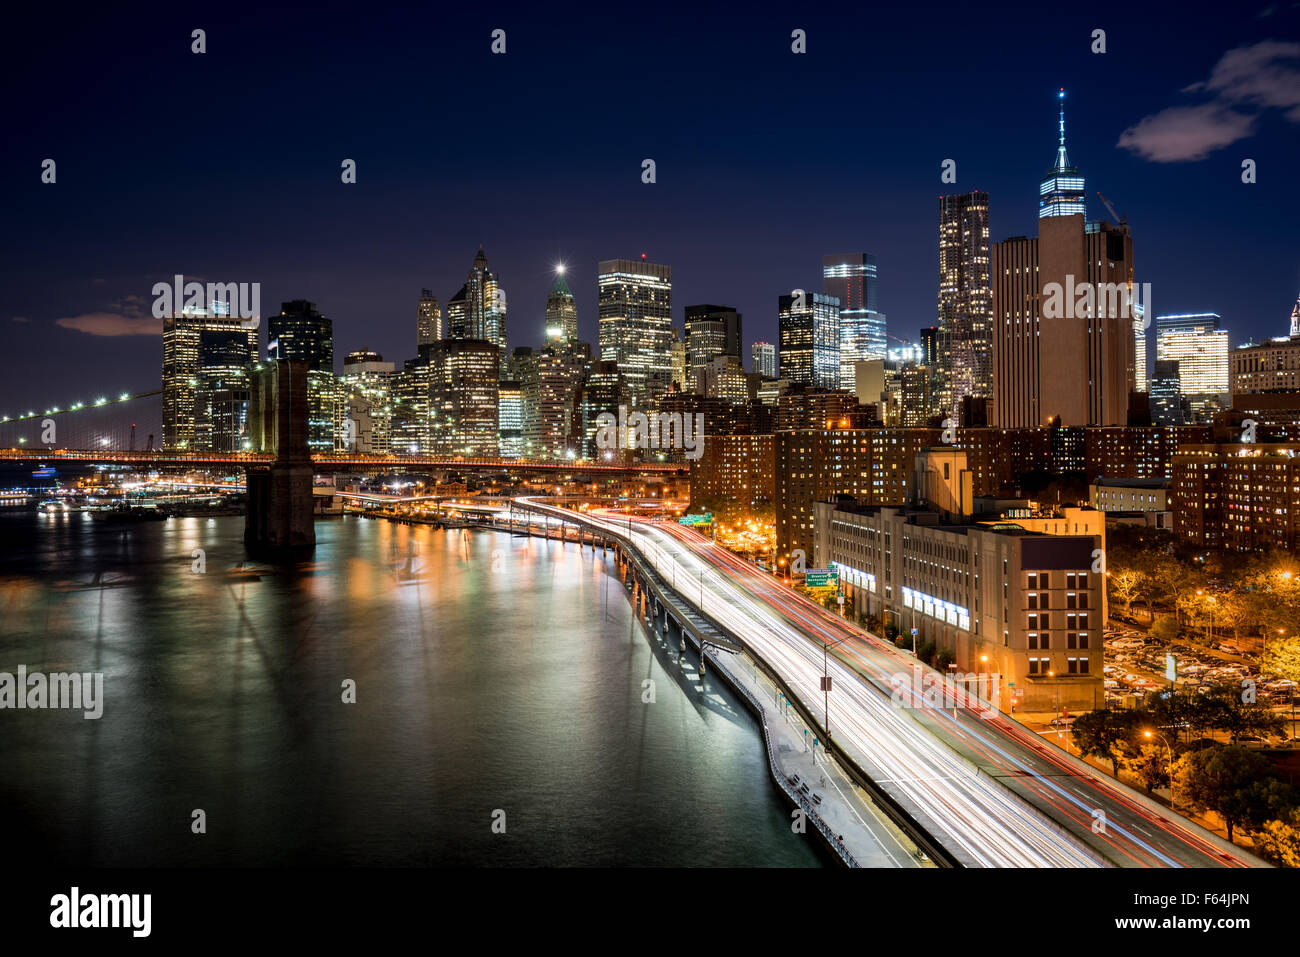 Cityscape at night of Lower Manhattan Financial District with illuminated skyscrapers and World Trade Center. New - Stock Image